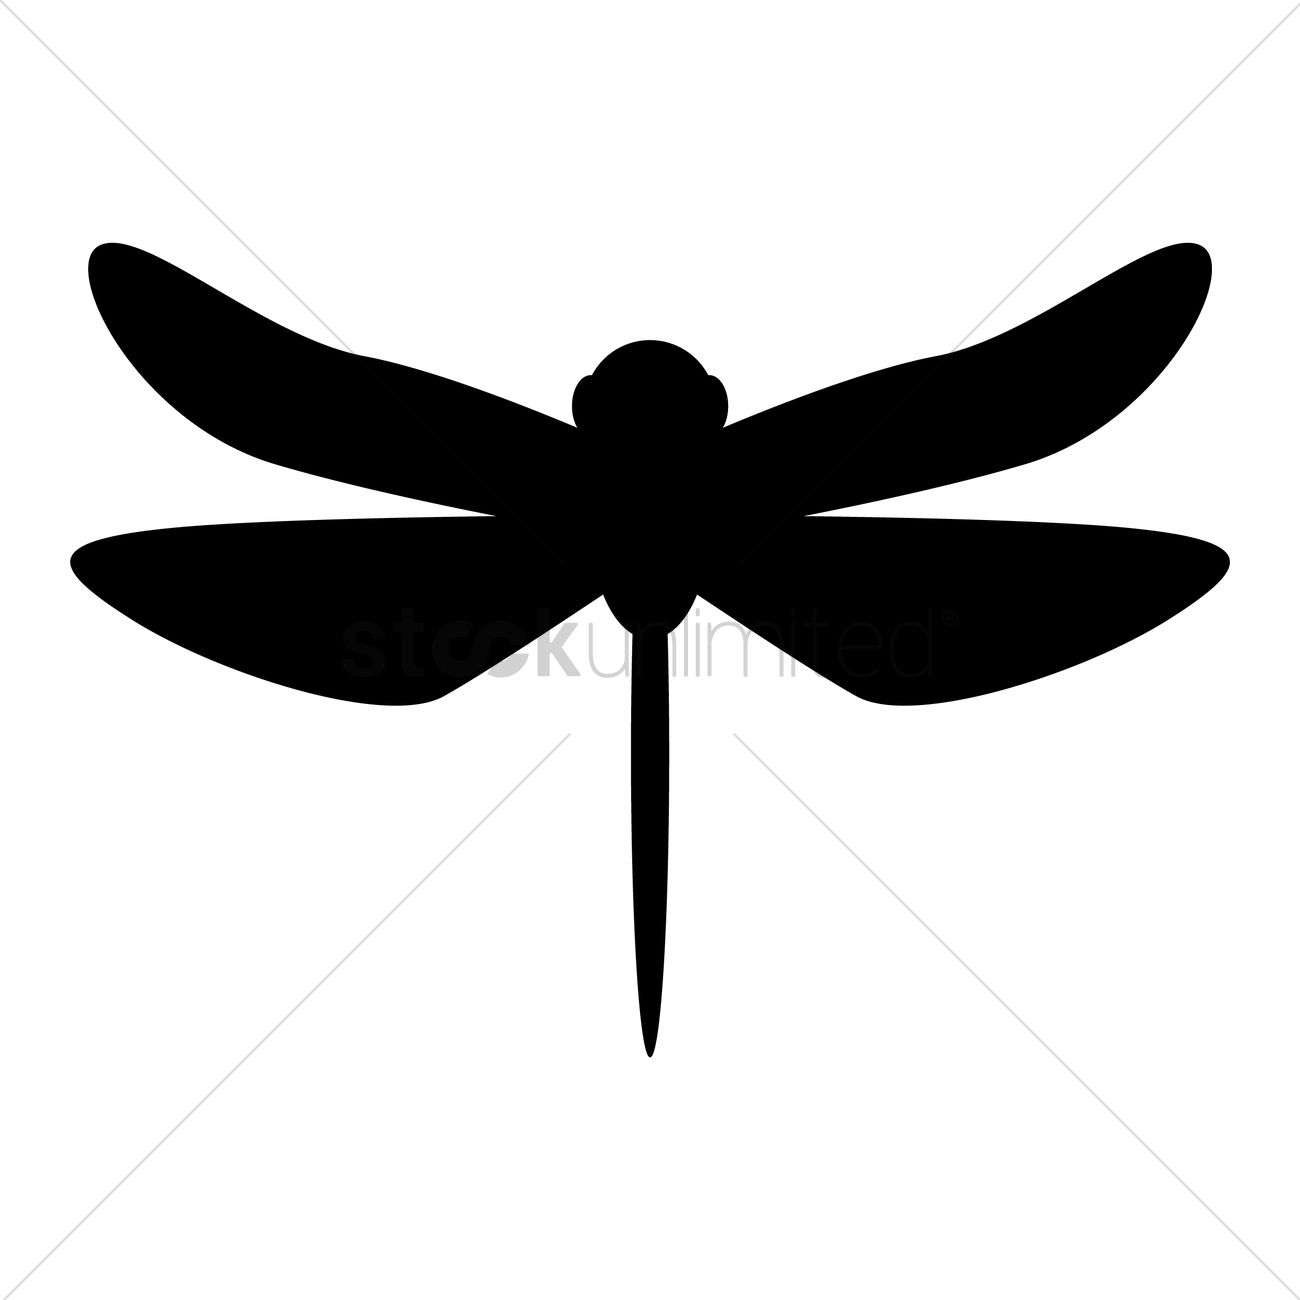 1300x1300 Dragonfly Silhouette Vector Image